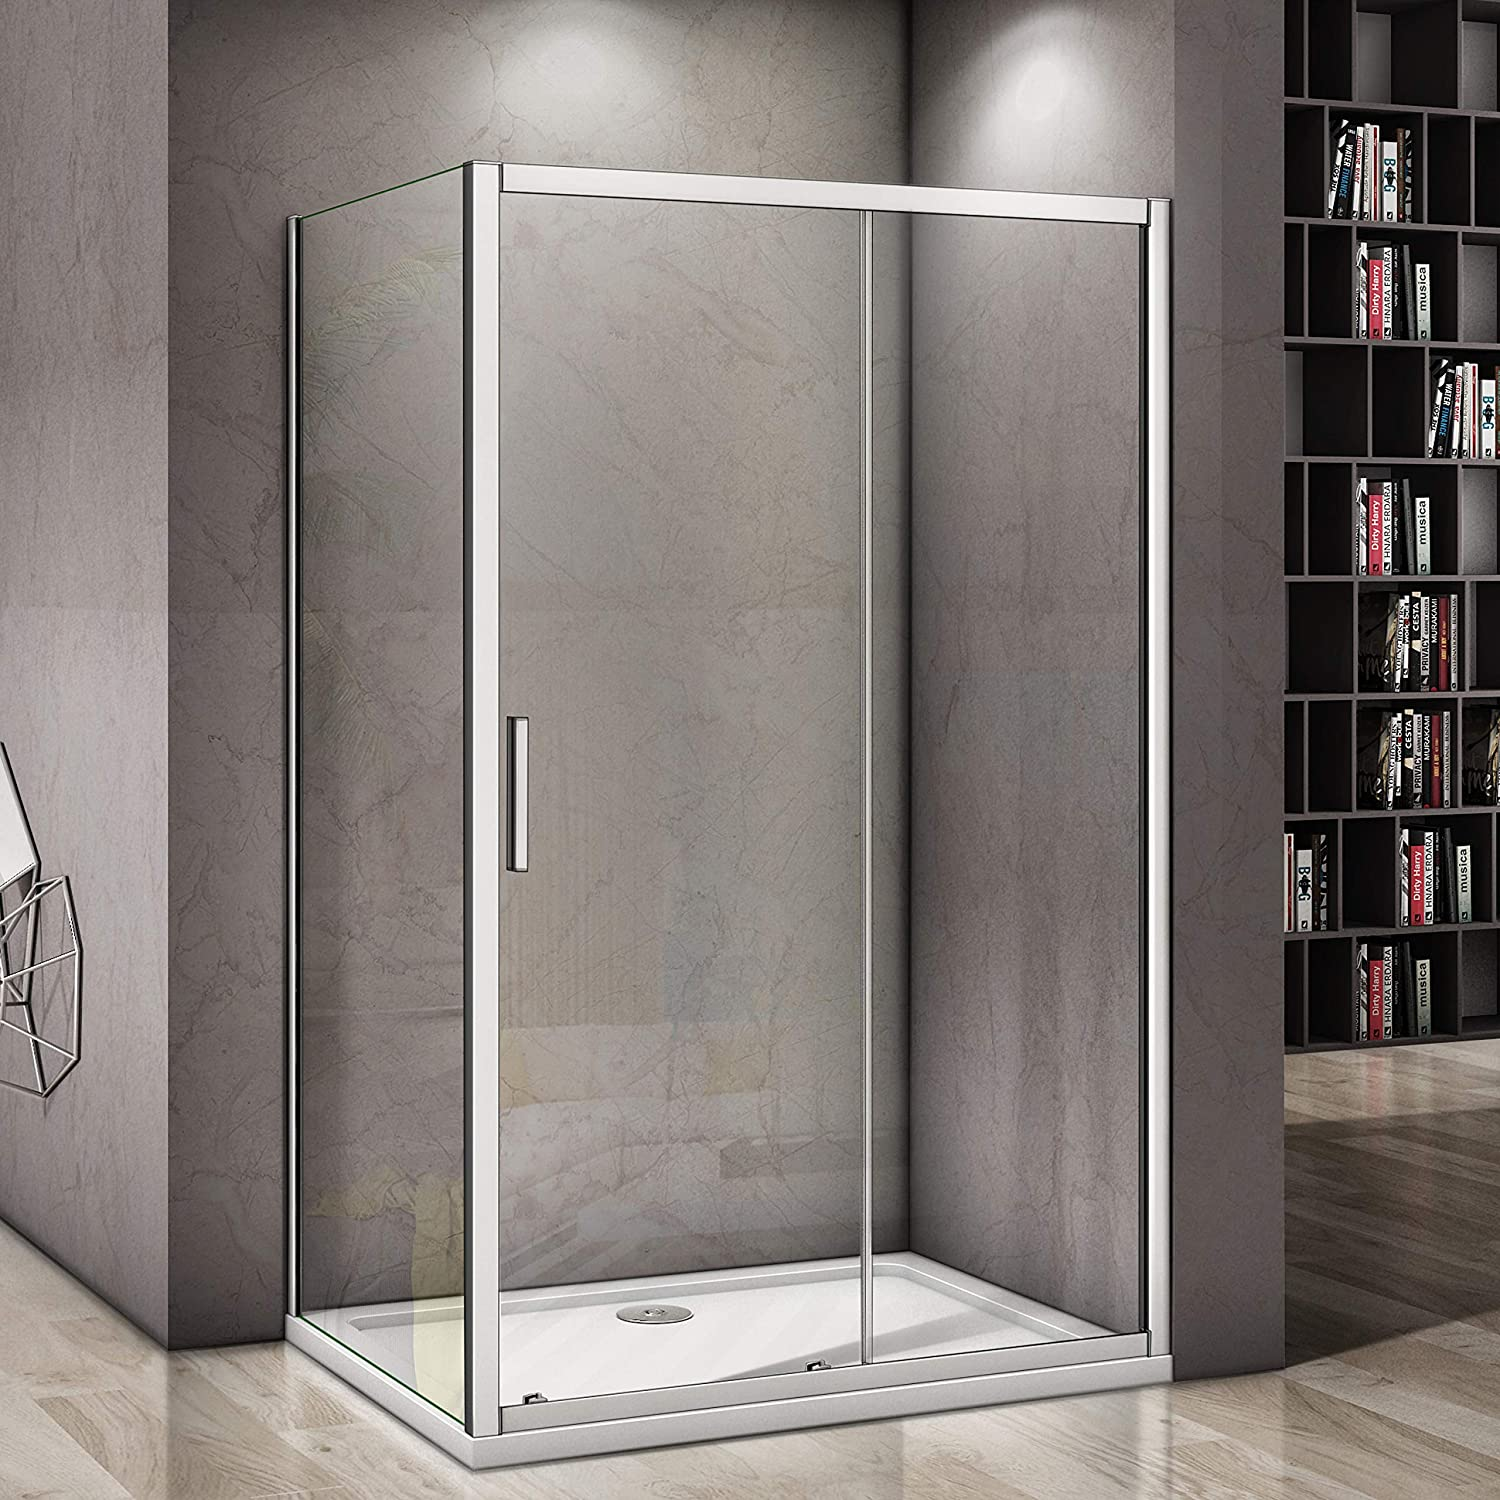 1100mm door+760mm side panel Perfect 1200x1850mm Sliding Door 6mm Safety Glass Screen Cubicle Shower Enclosure